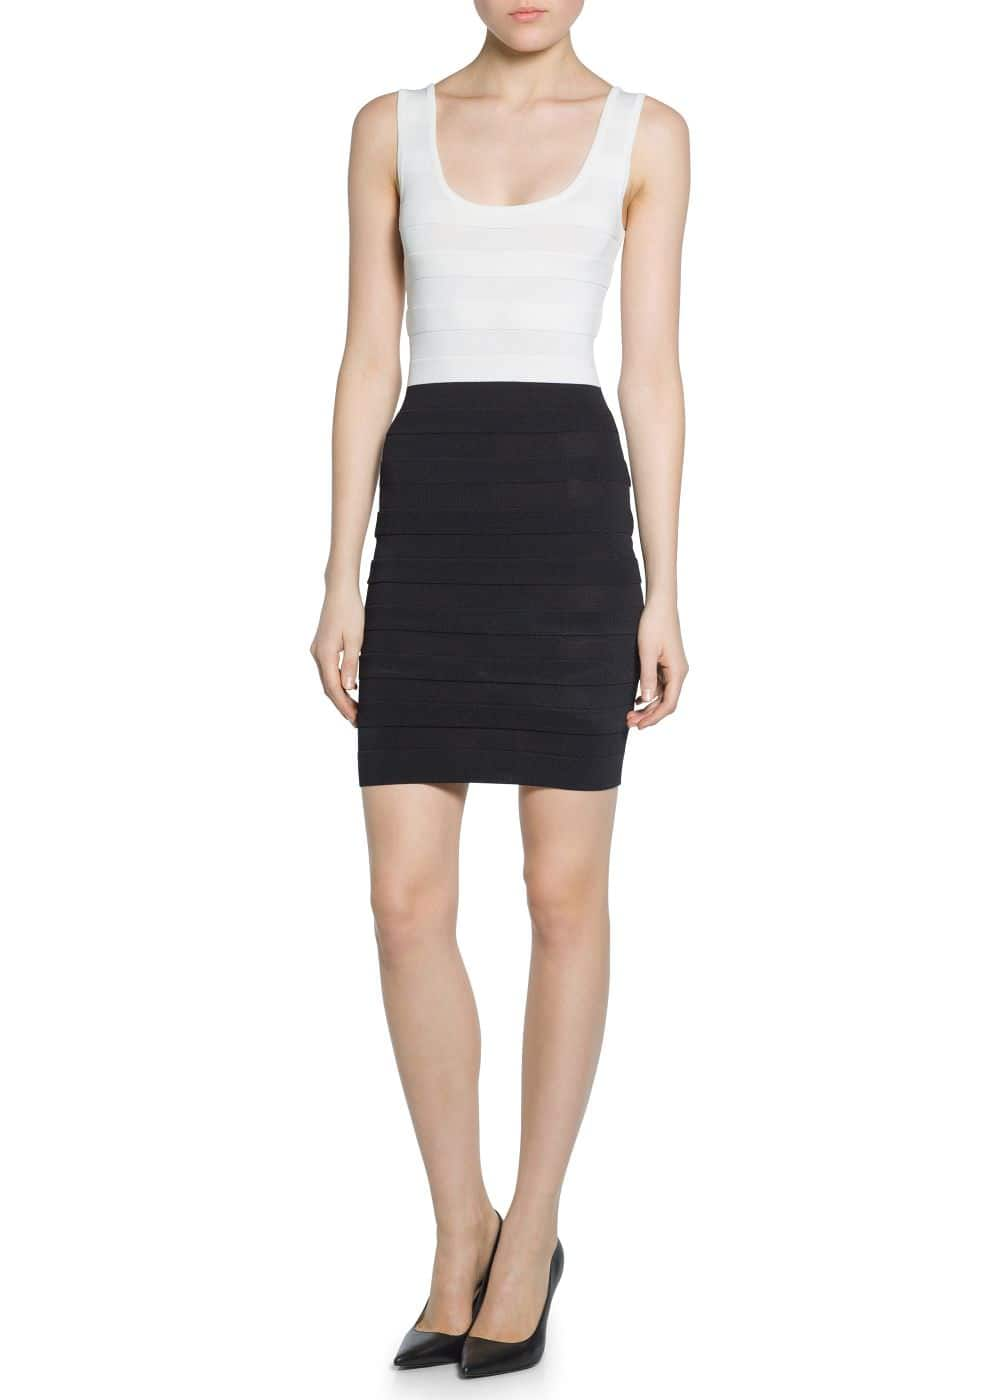 Contrast-bodice bodycon dress